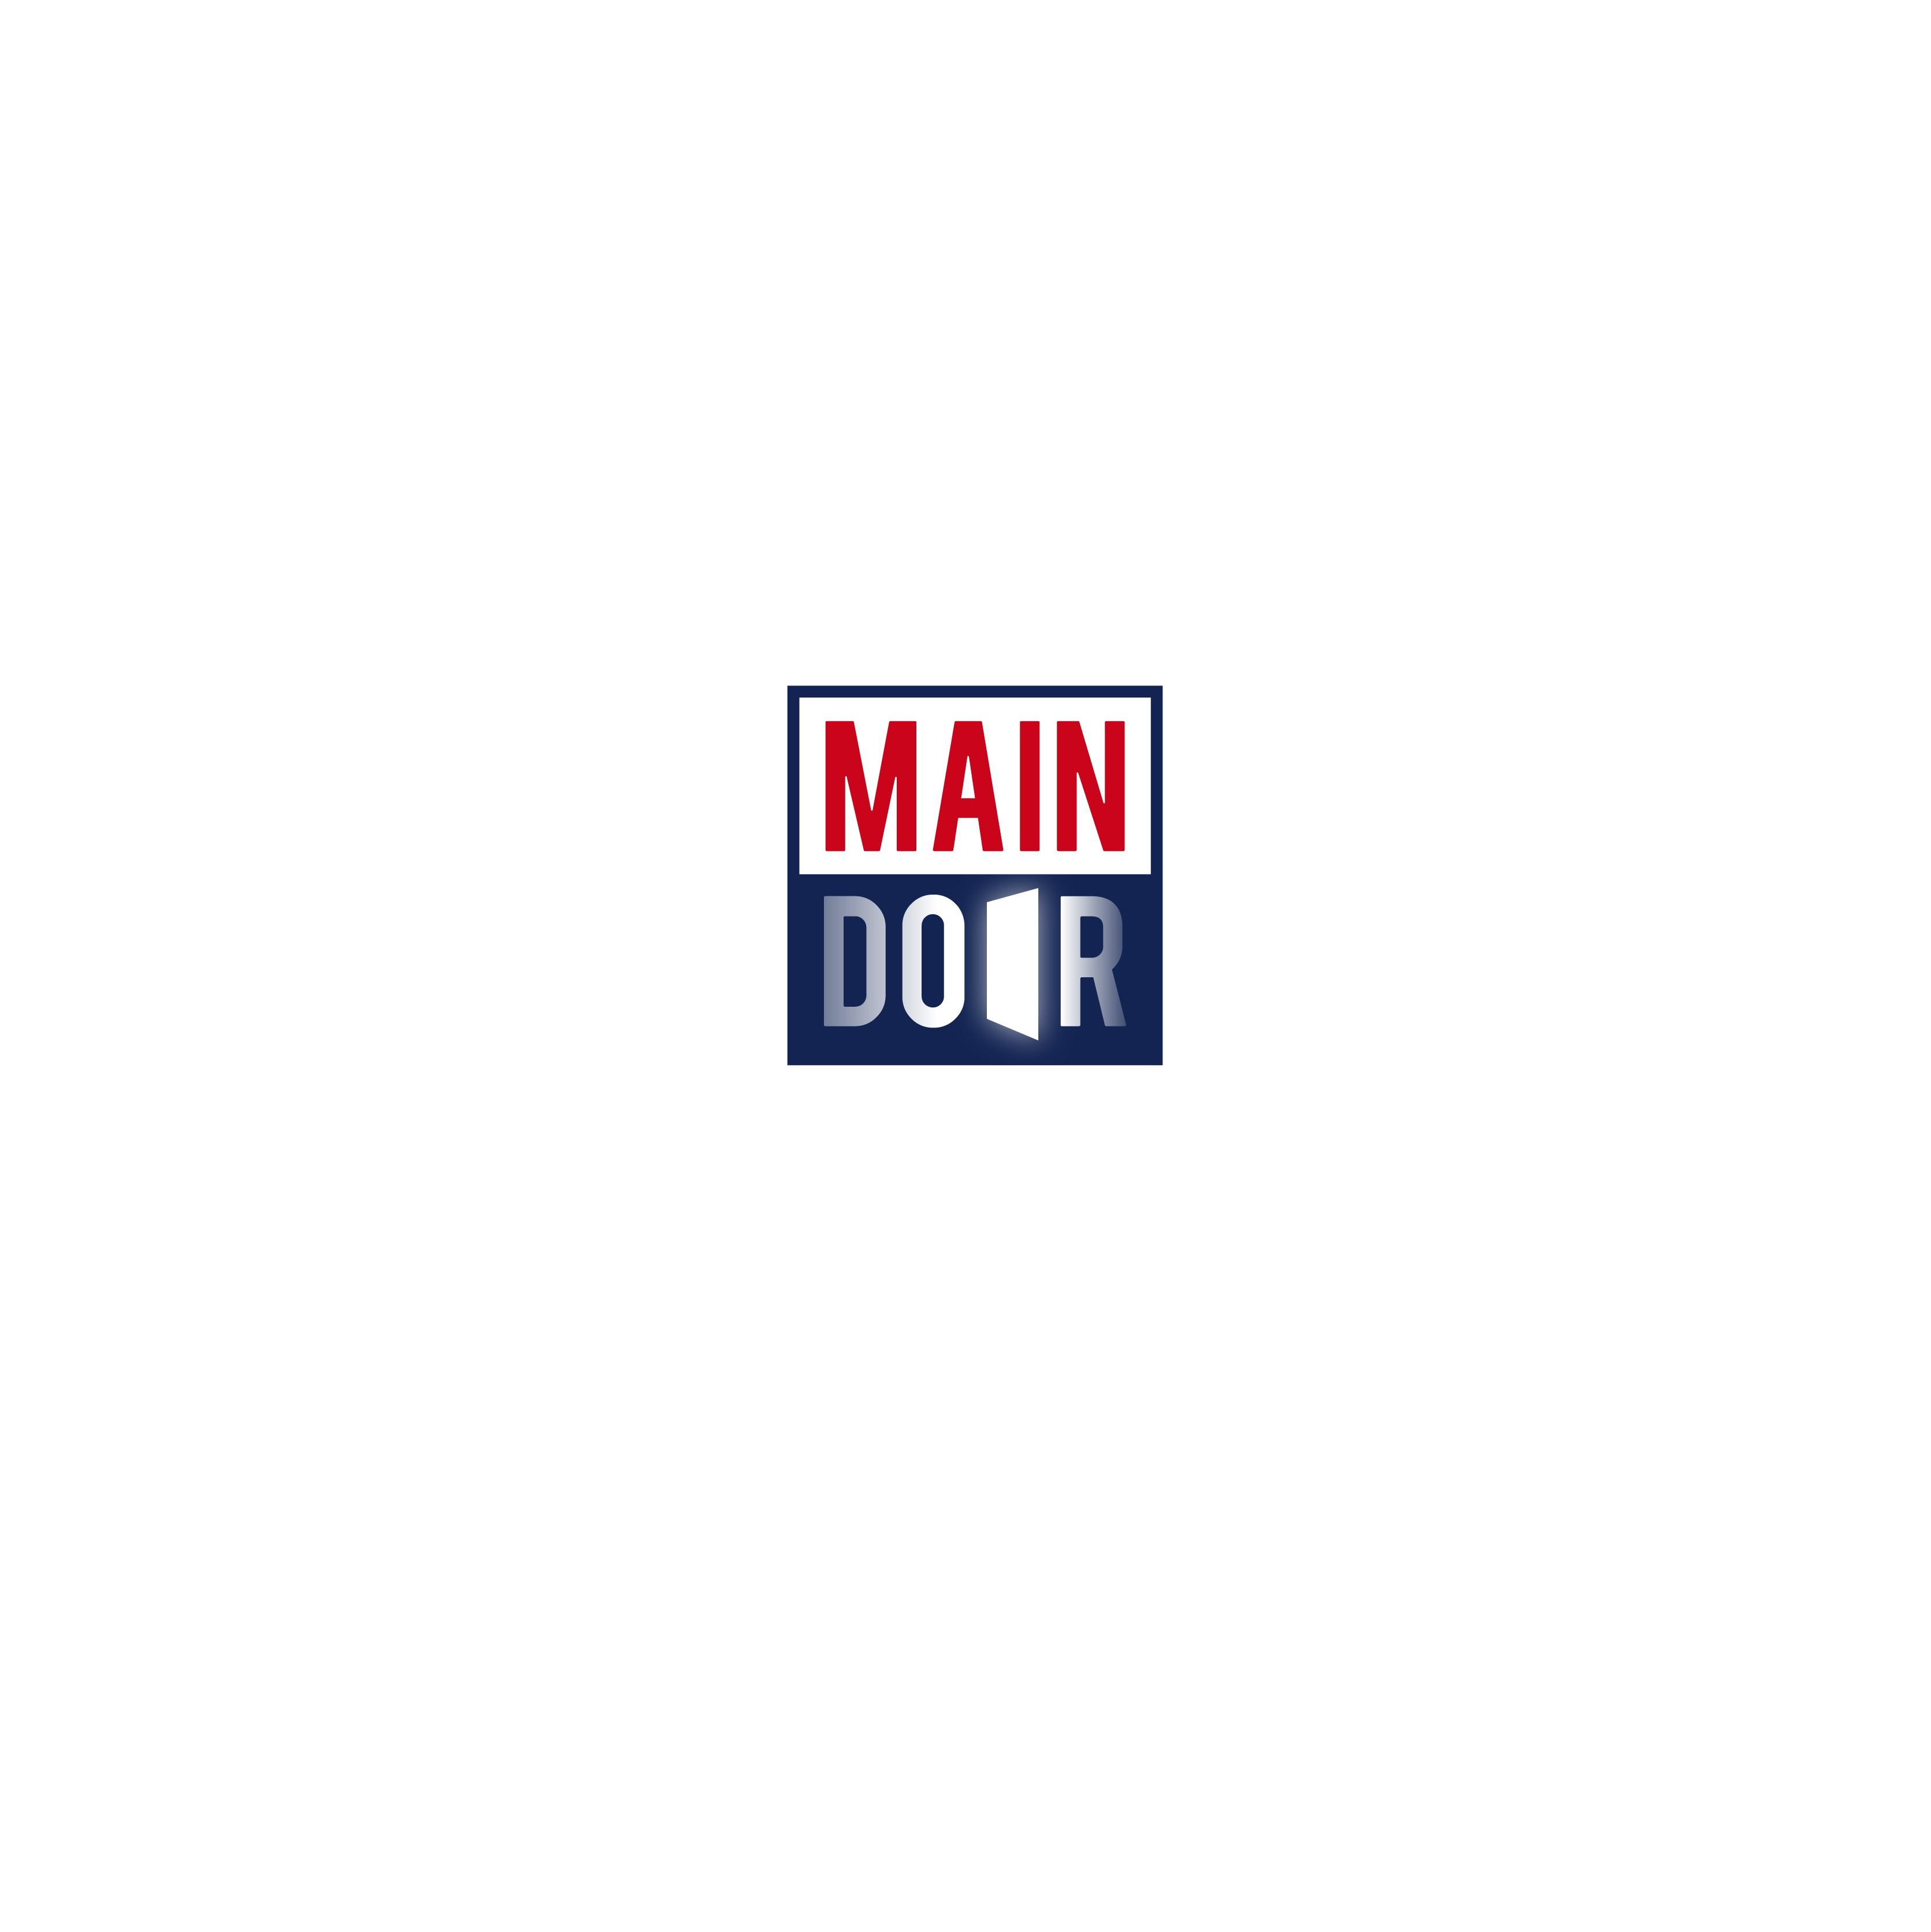 MainDoor wants a logo that mean safety and well done job